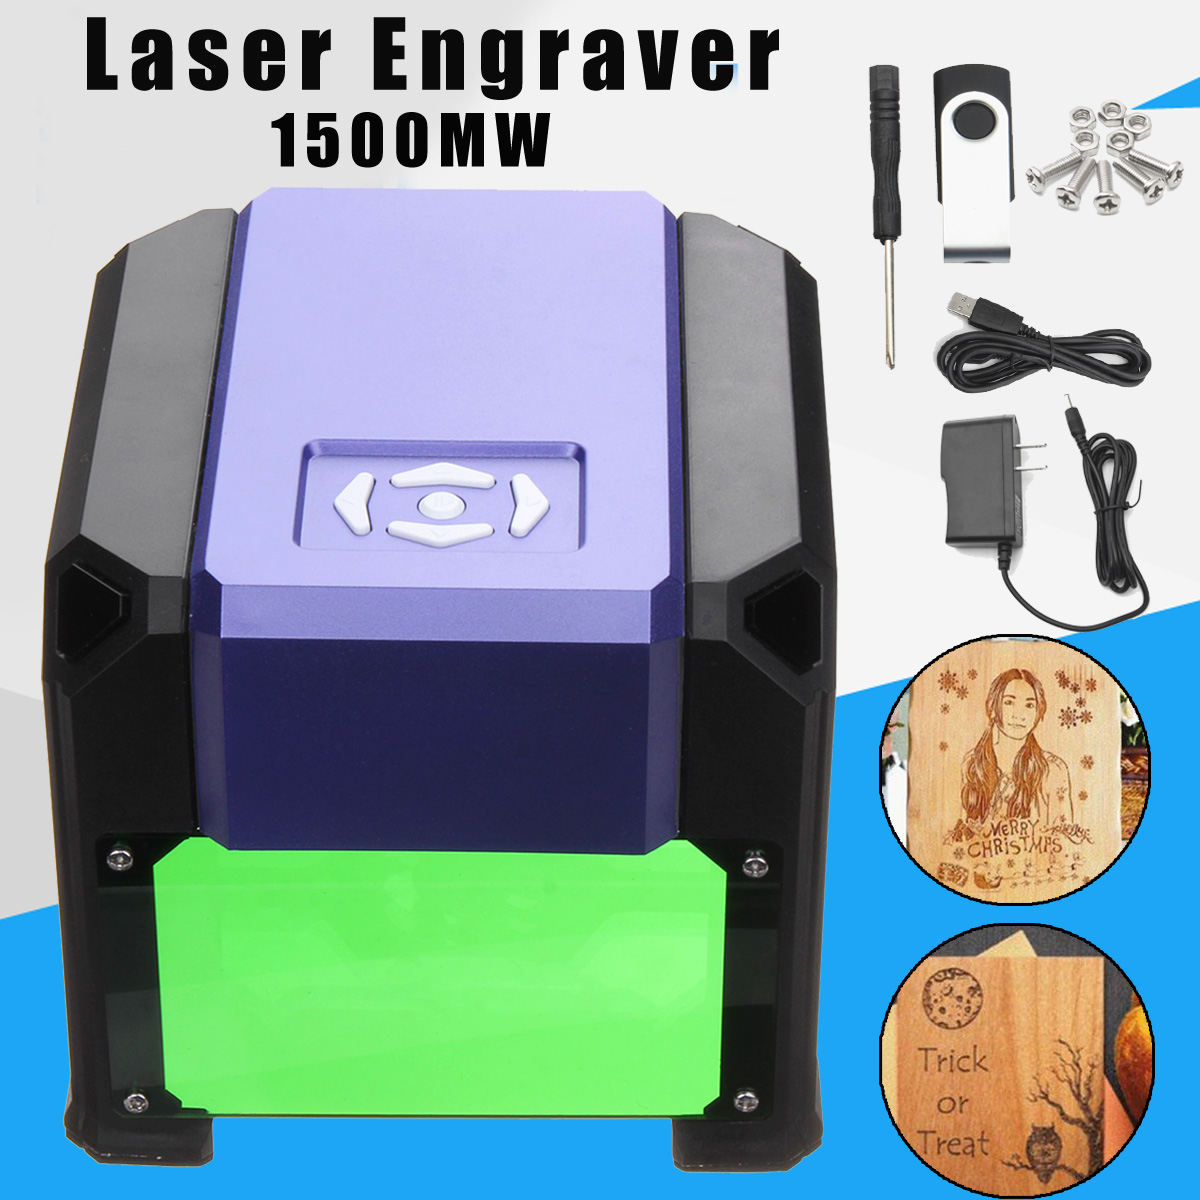 1500mW 80x80mm USB Desktop Mini Laser Engraver Machine Printer DIY Logo Marking Cutter Engraving Range CNC Laser Carving For WIN the anna karenina fix